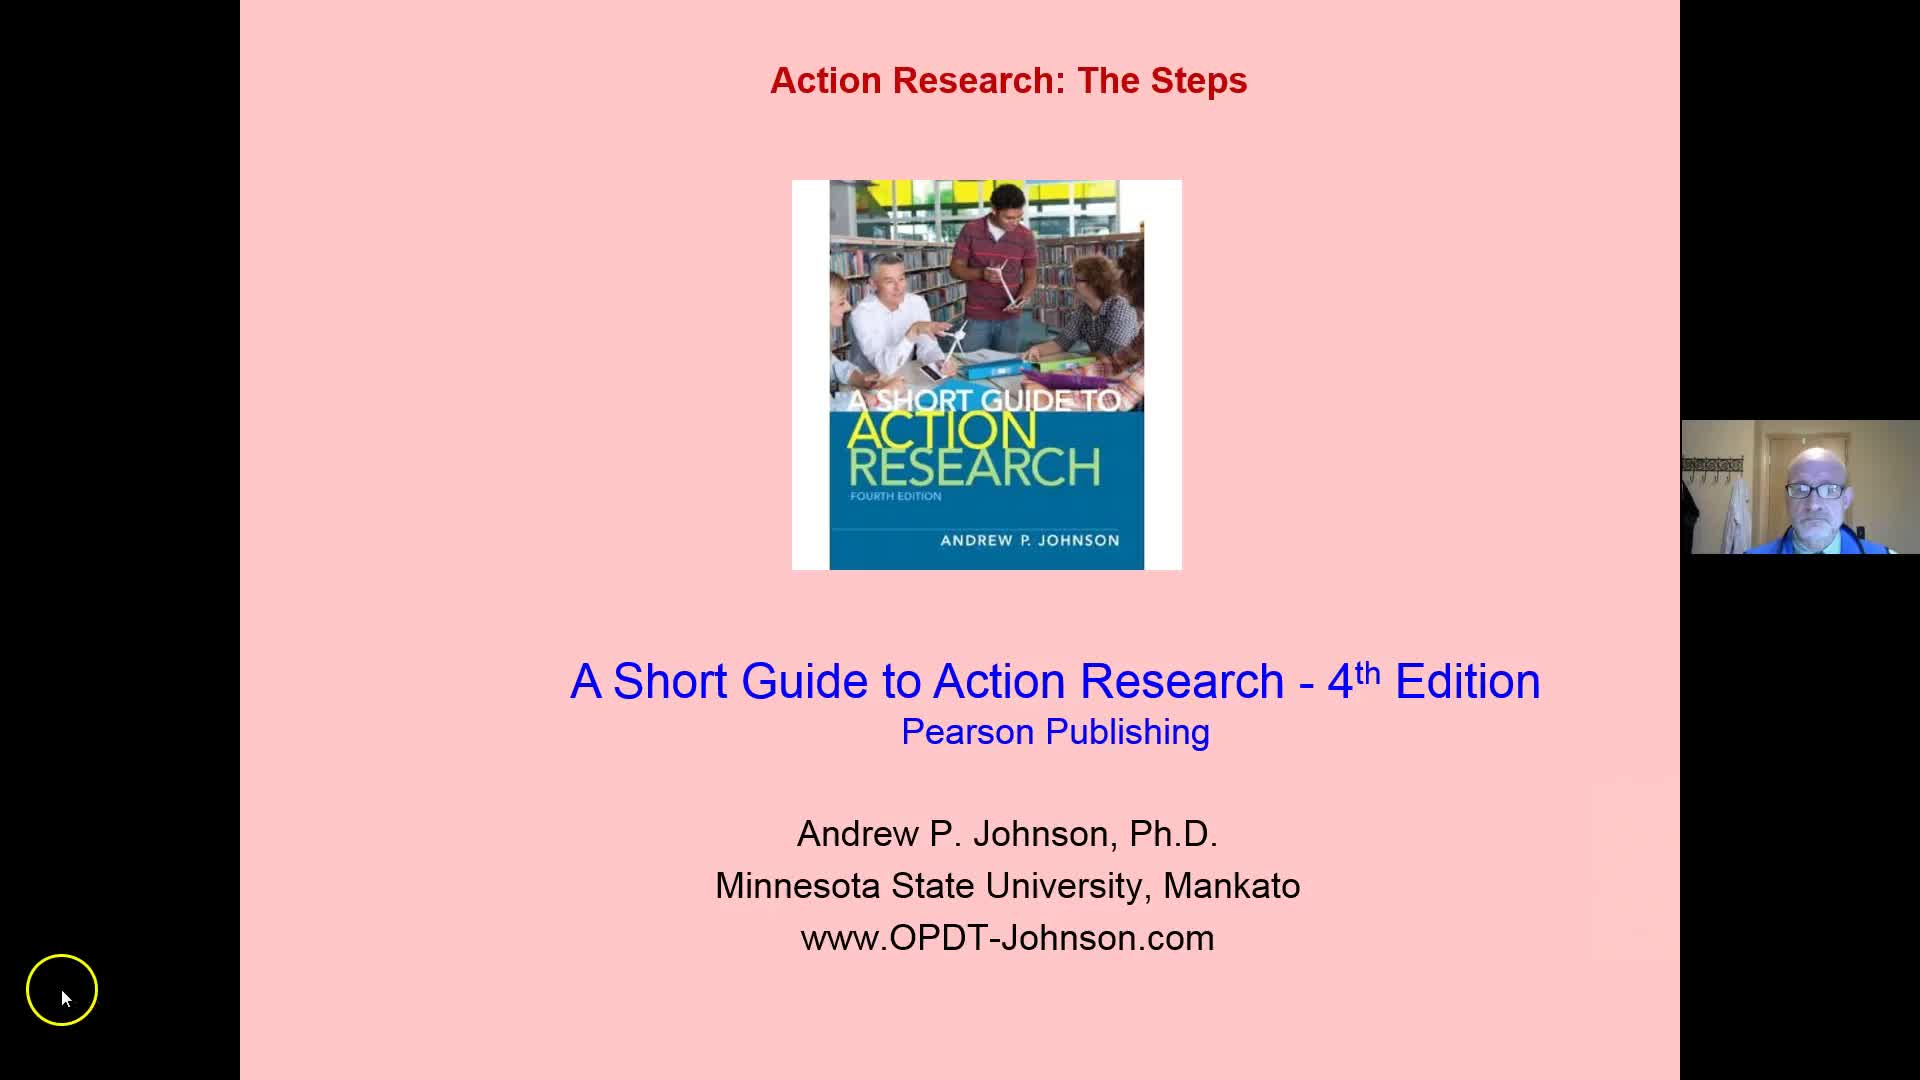 ACTION RESEARCH STEPS